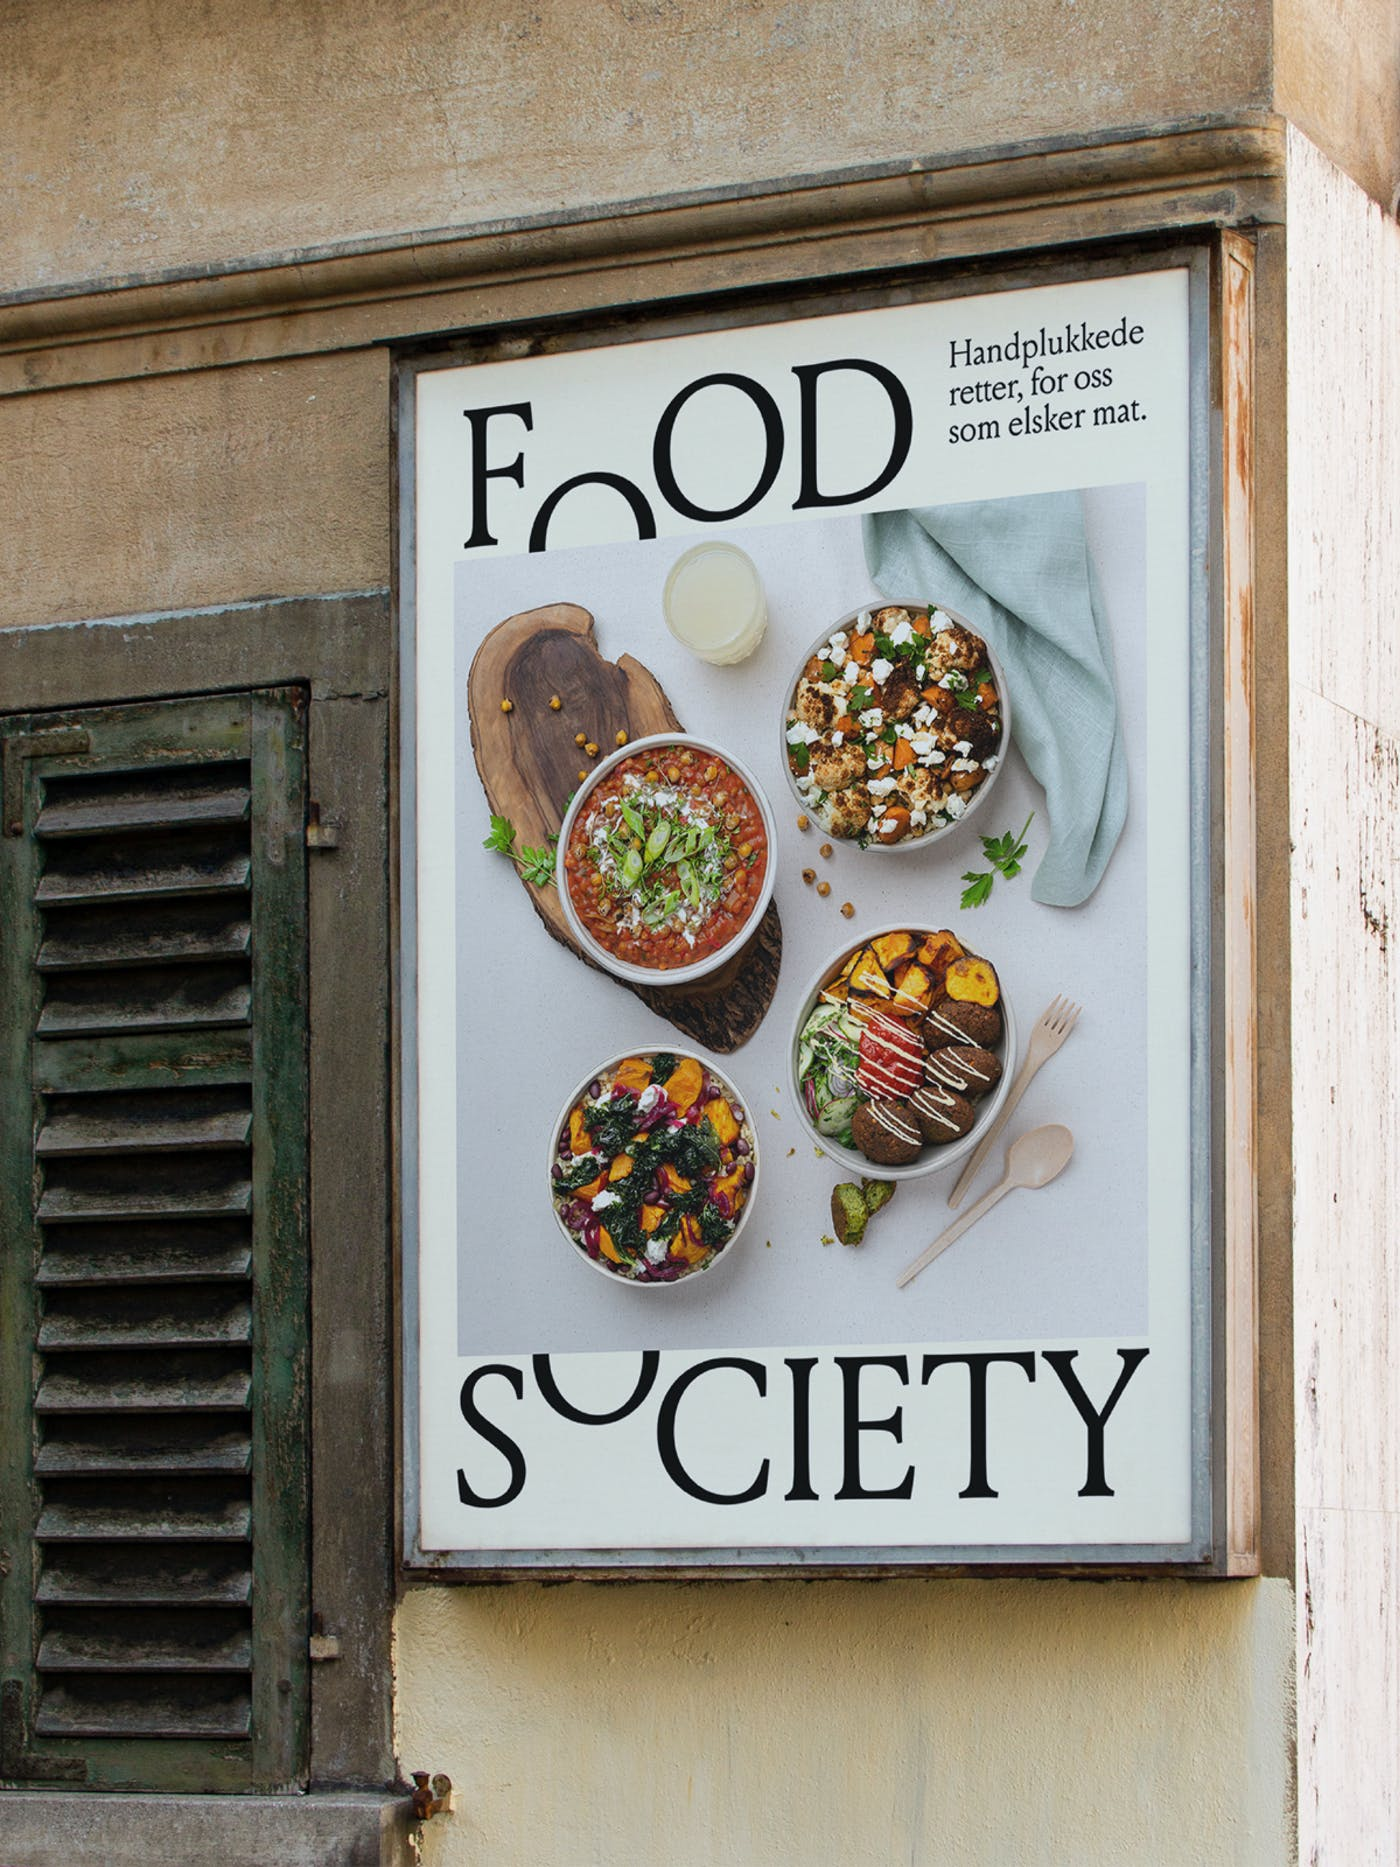 Food Society Street Poster 03